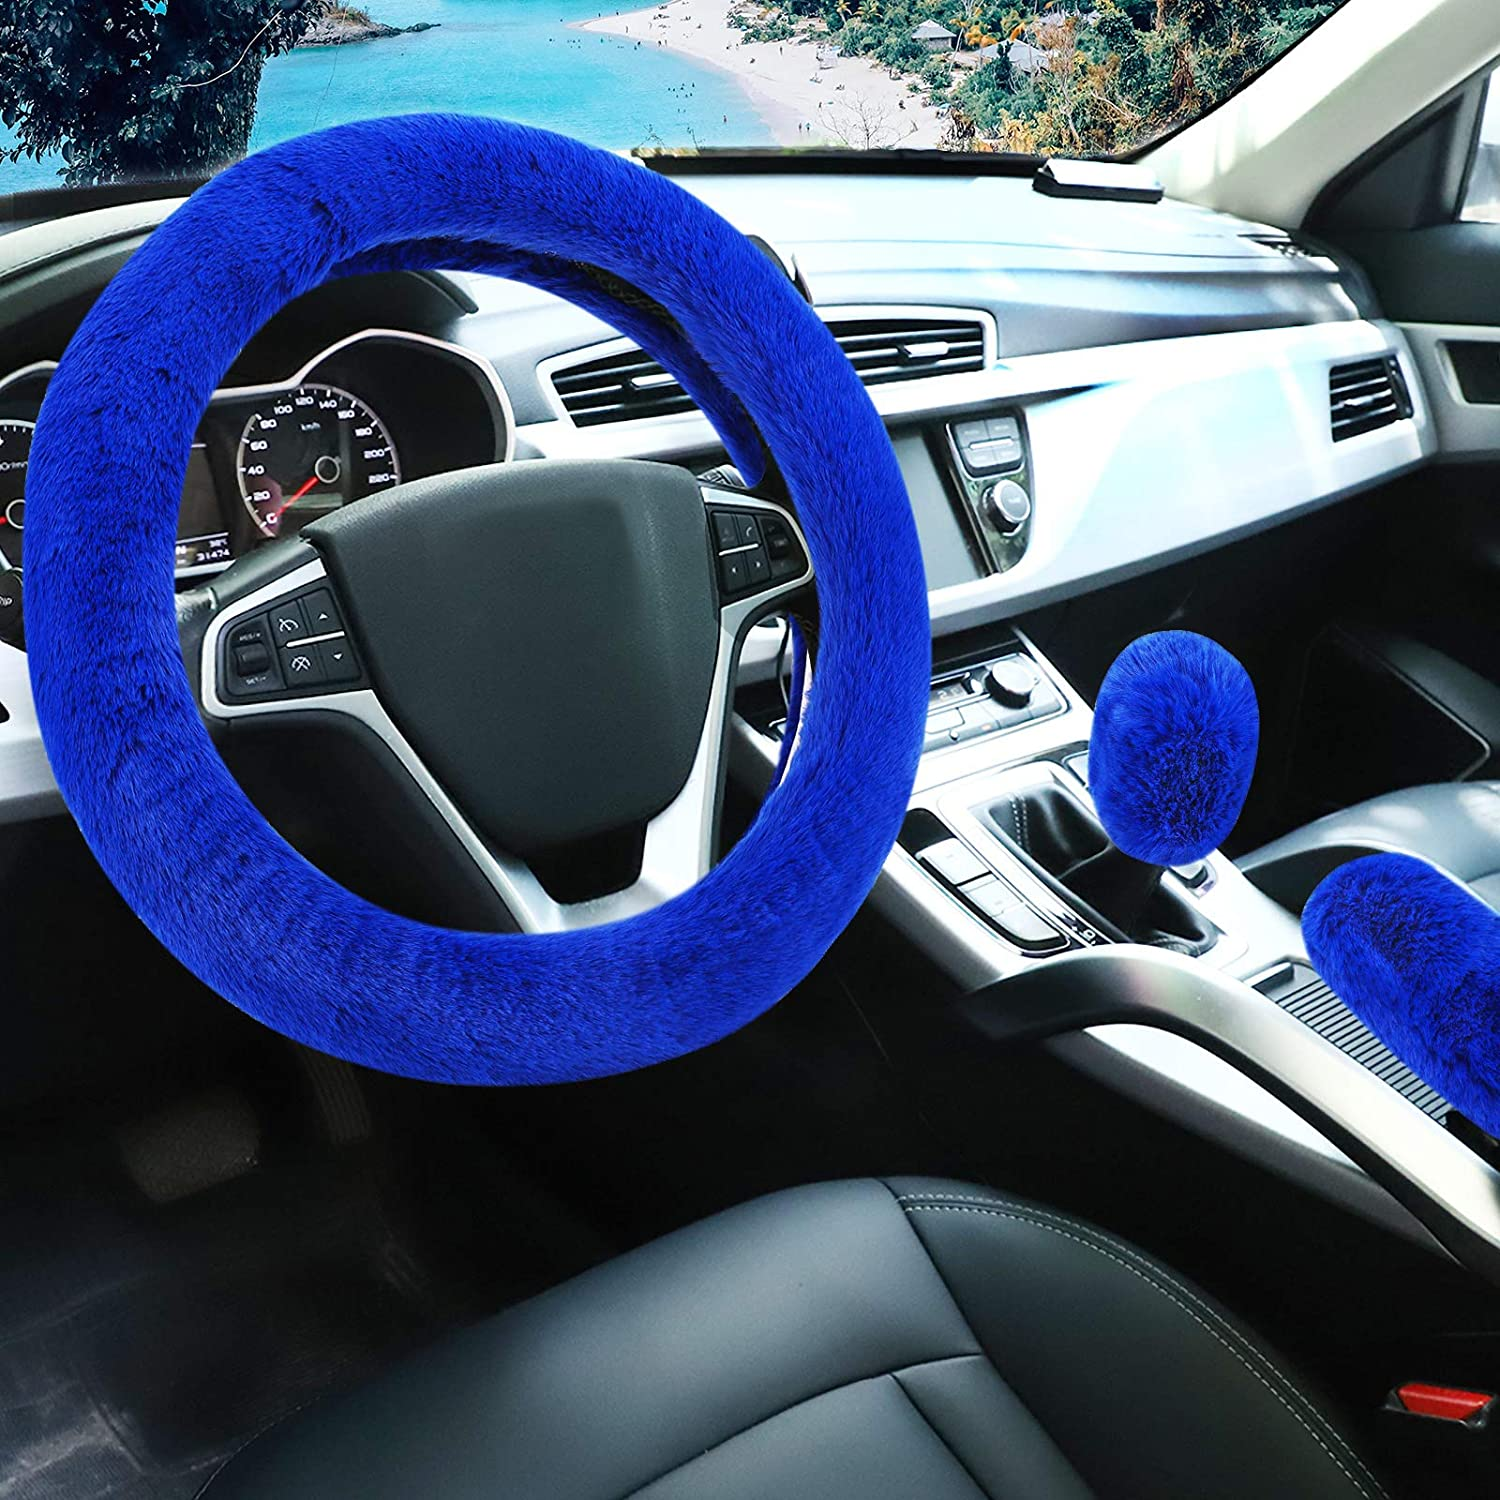 Accmor Fluffy Steering Wheel Cover for Women Girls, 15 inches Winter Warm Fuzzy Vehicle Wheel Protector Car Decor, Ladies Fashion Fur Car Wheel Cover & Handbrake Cover & Gear Shift Cover Set (Blue)